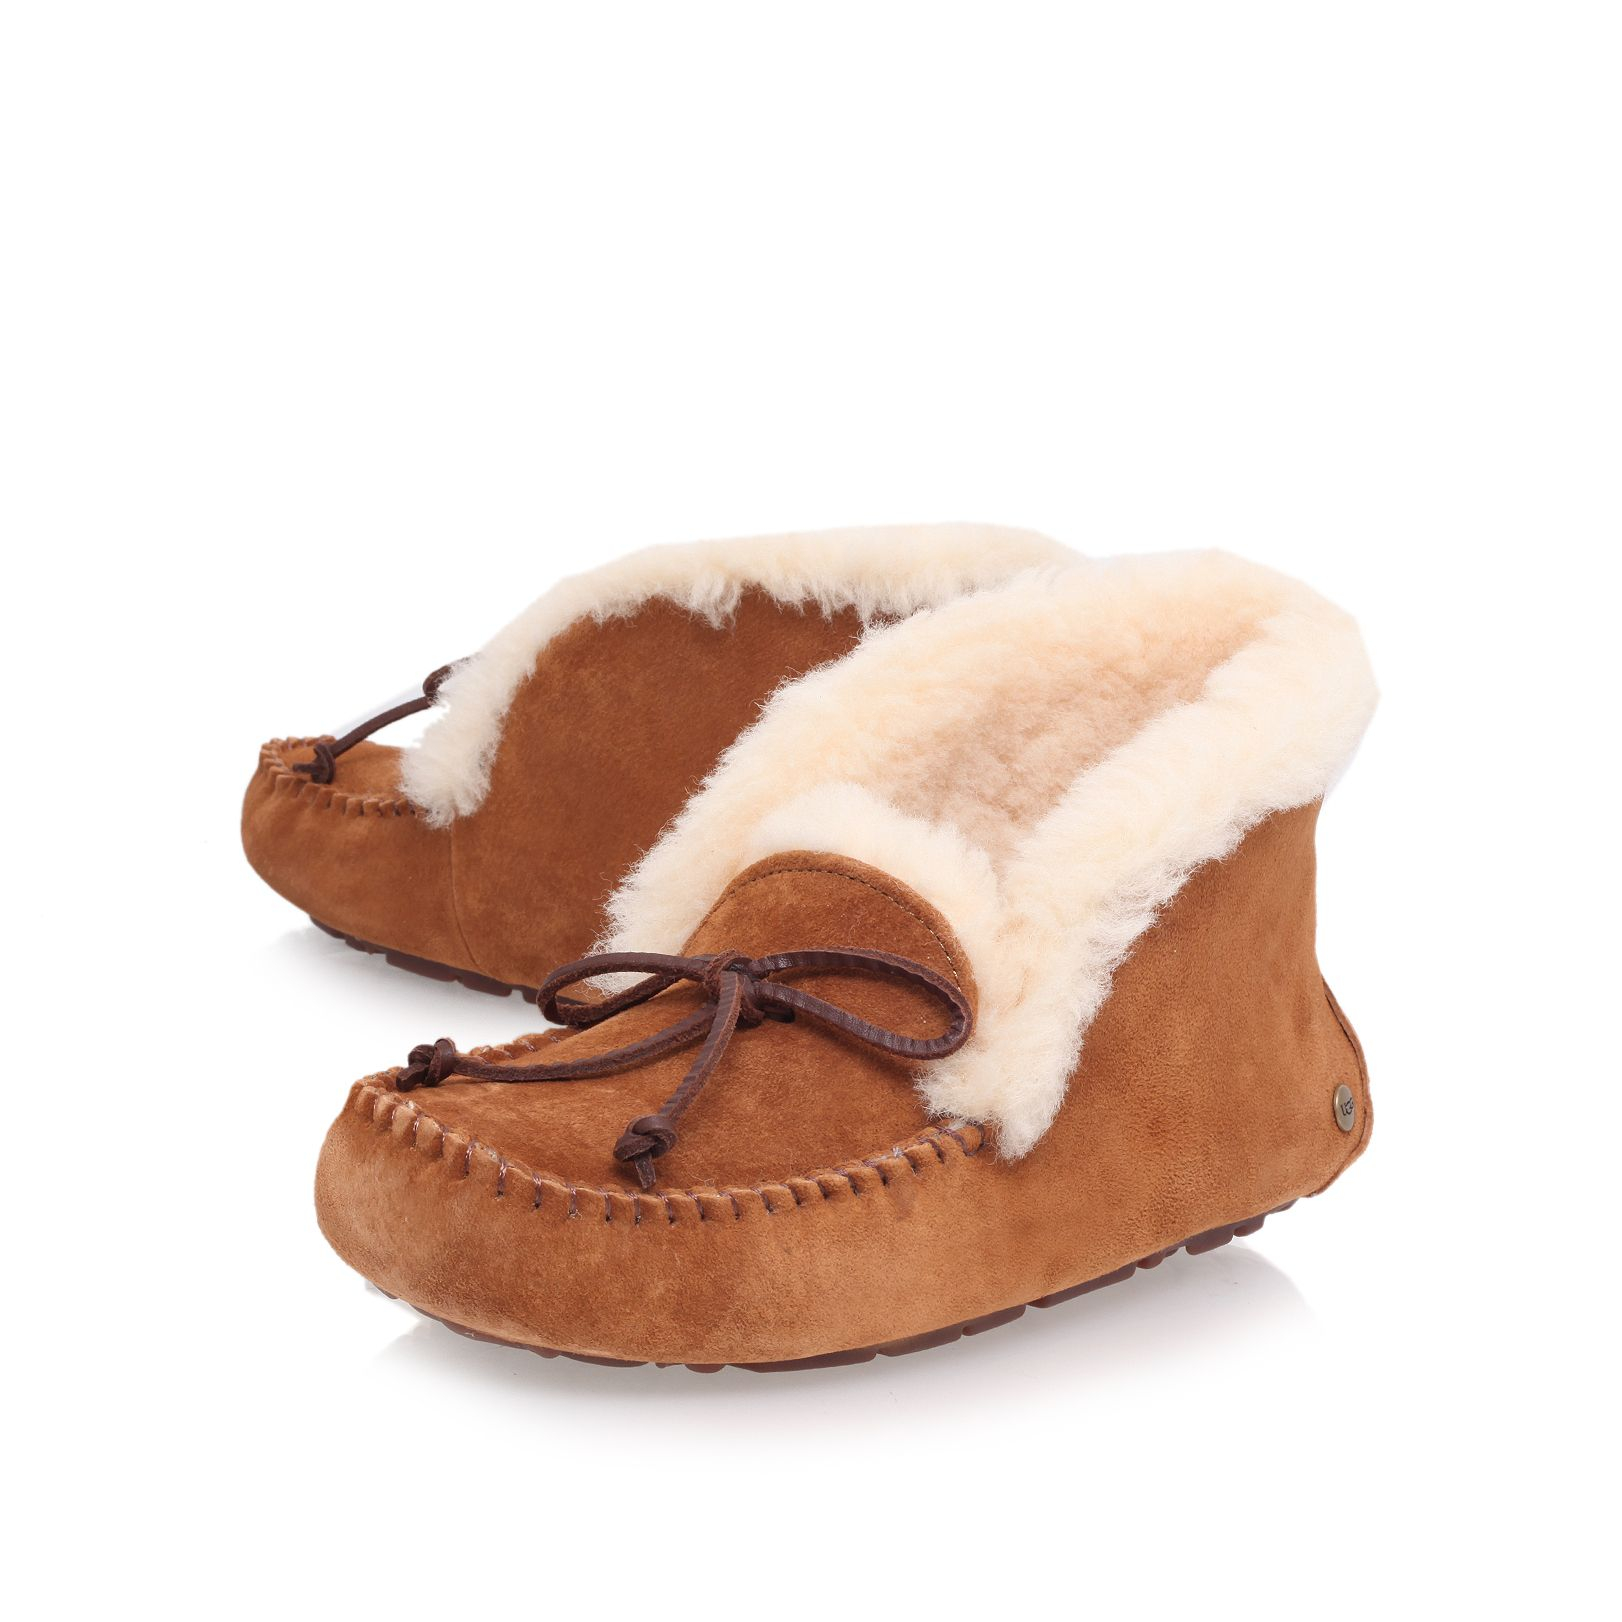 7b95d4861367 Uggboots4all, a leading ugg boot store in Australia offers a wide range of  genuine Australian ugg boots for women in different colours and styles.